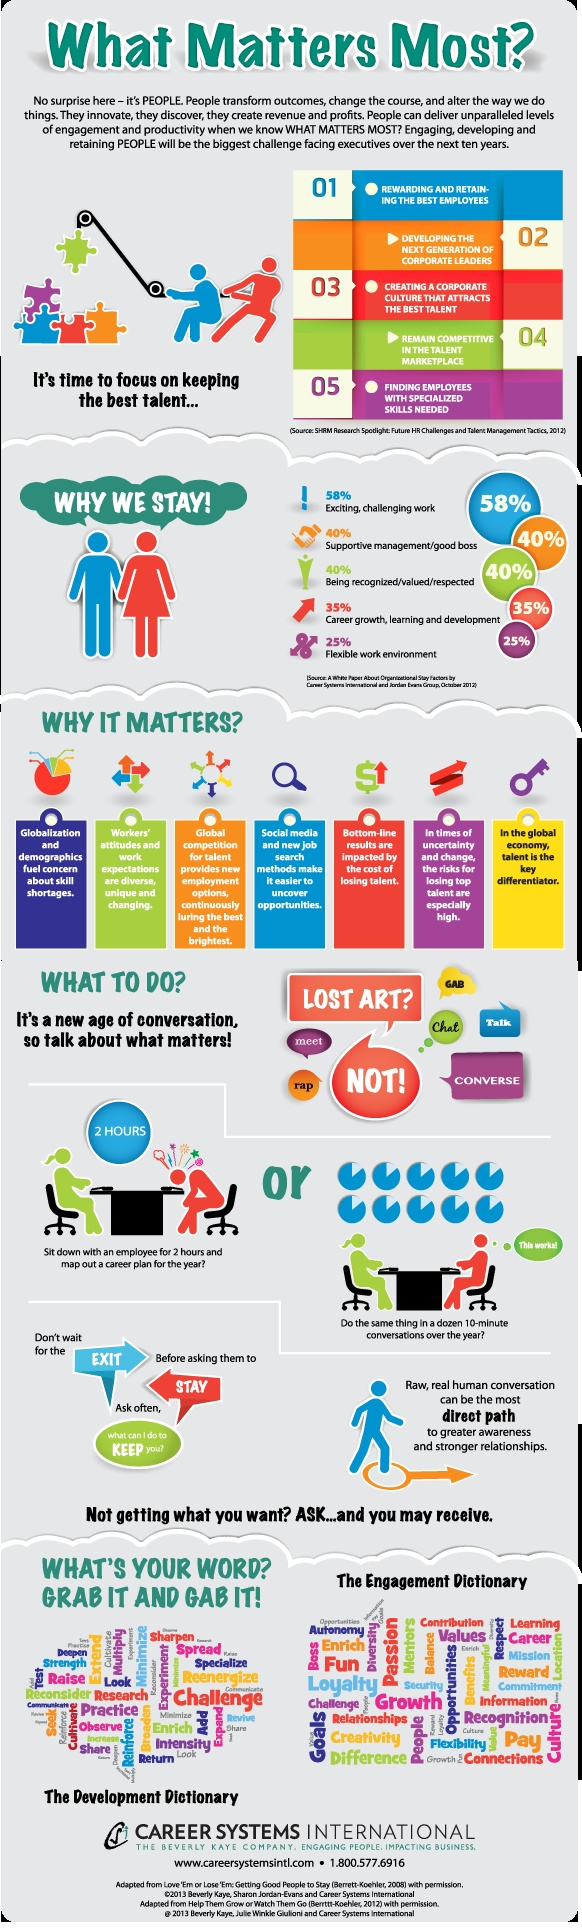 best hrm human resource management images people matter most focus on keeping your best talent infographic by